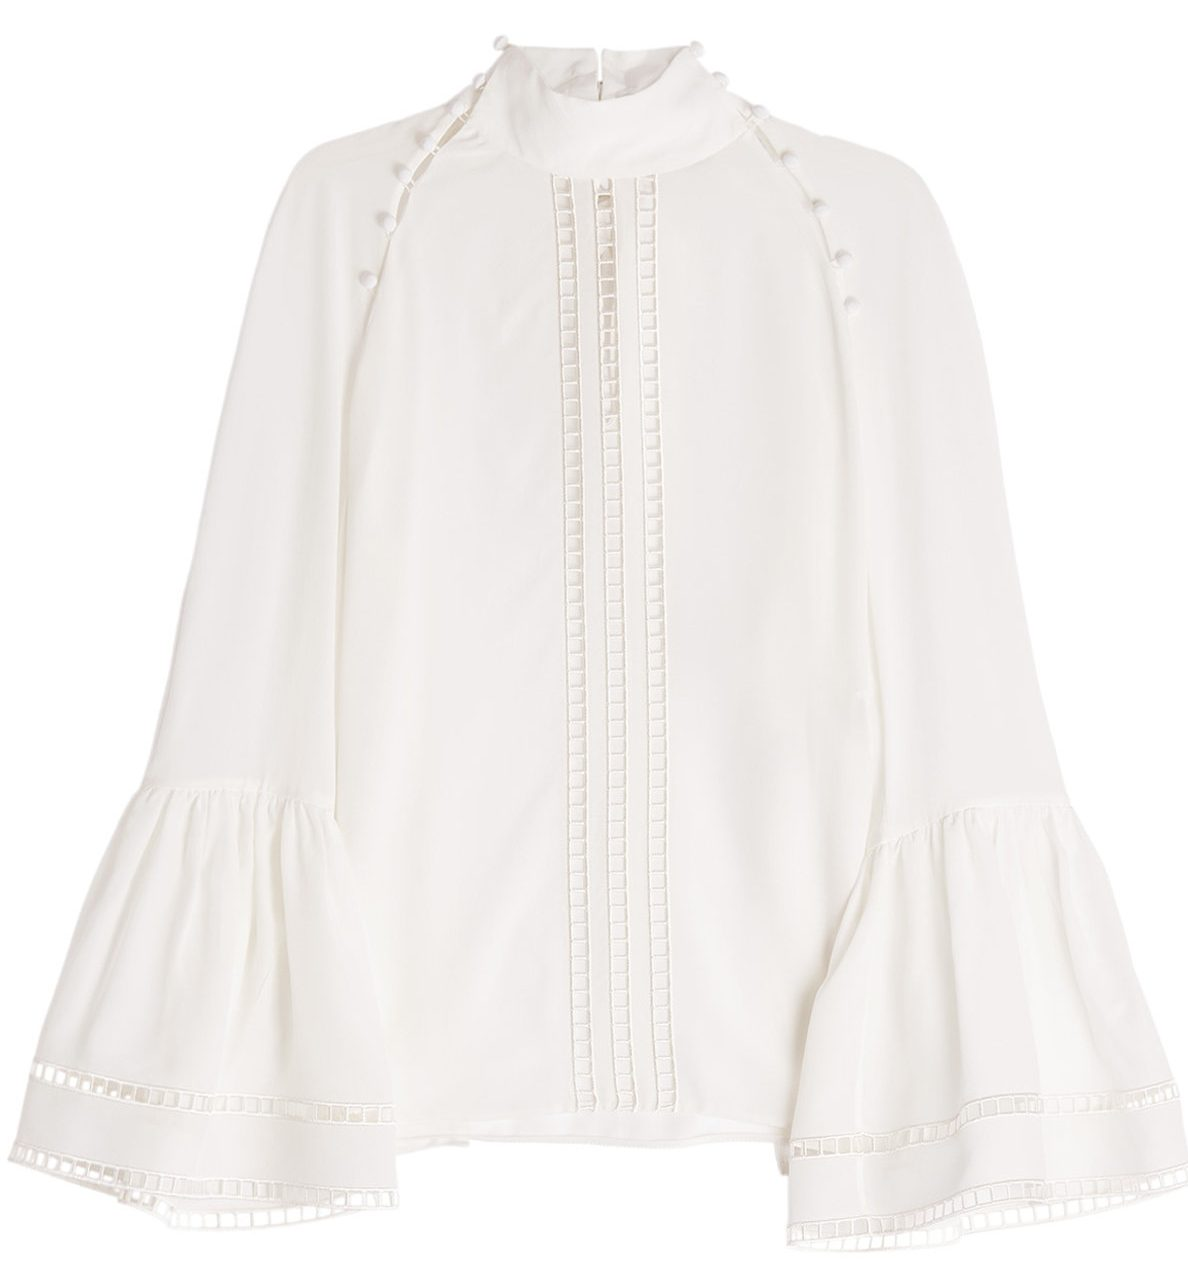 Fendi white silk crepe blouse